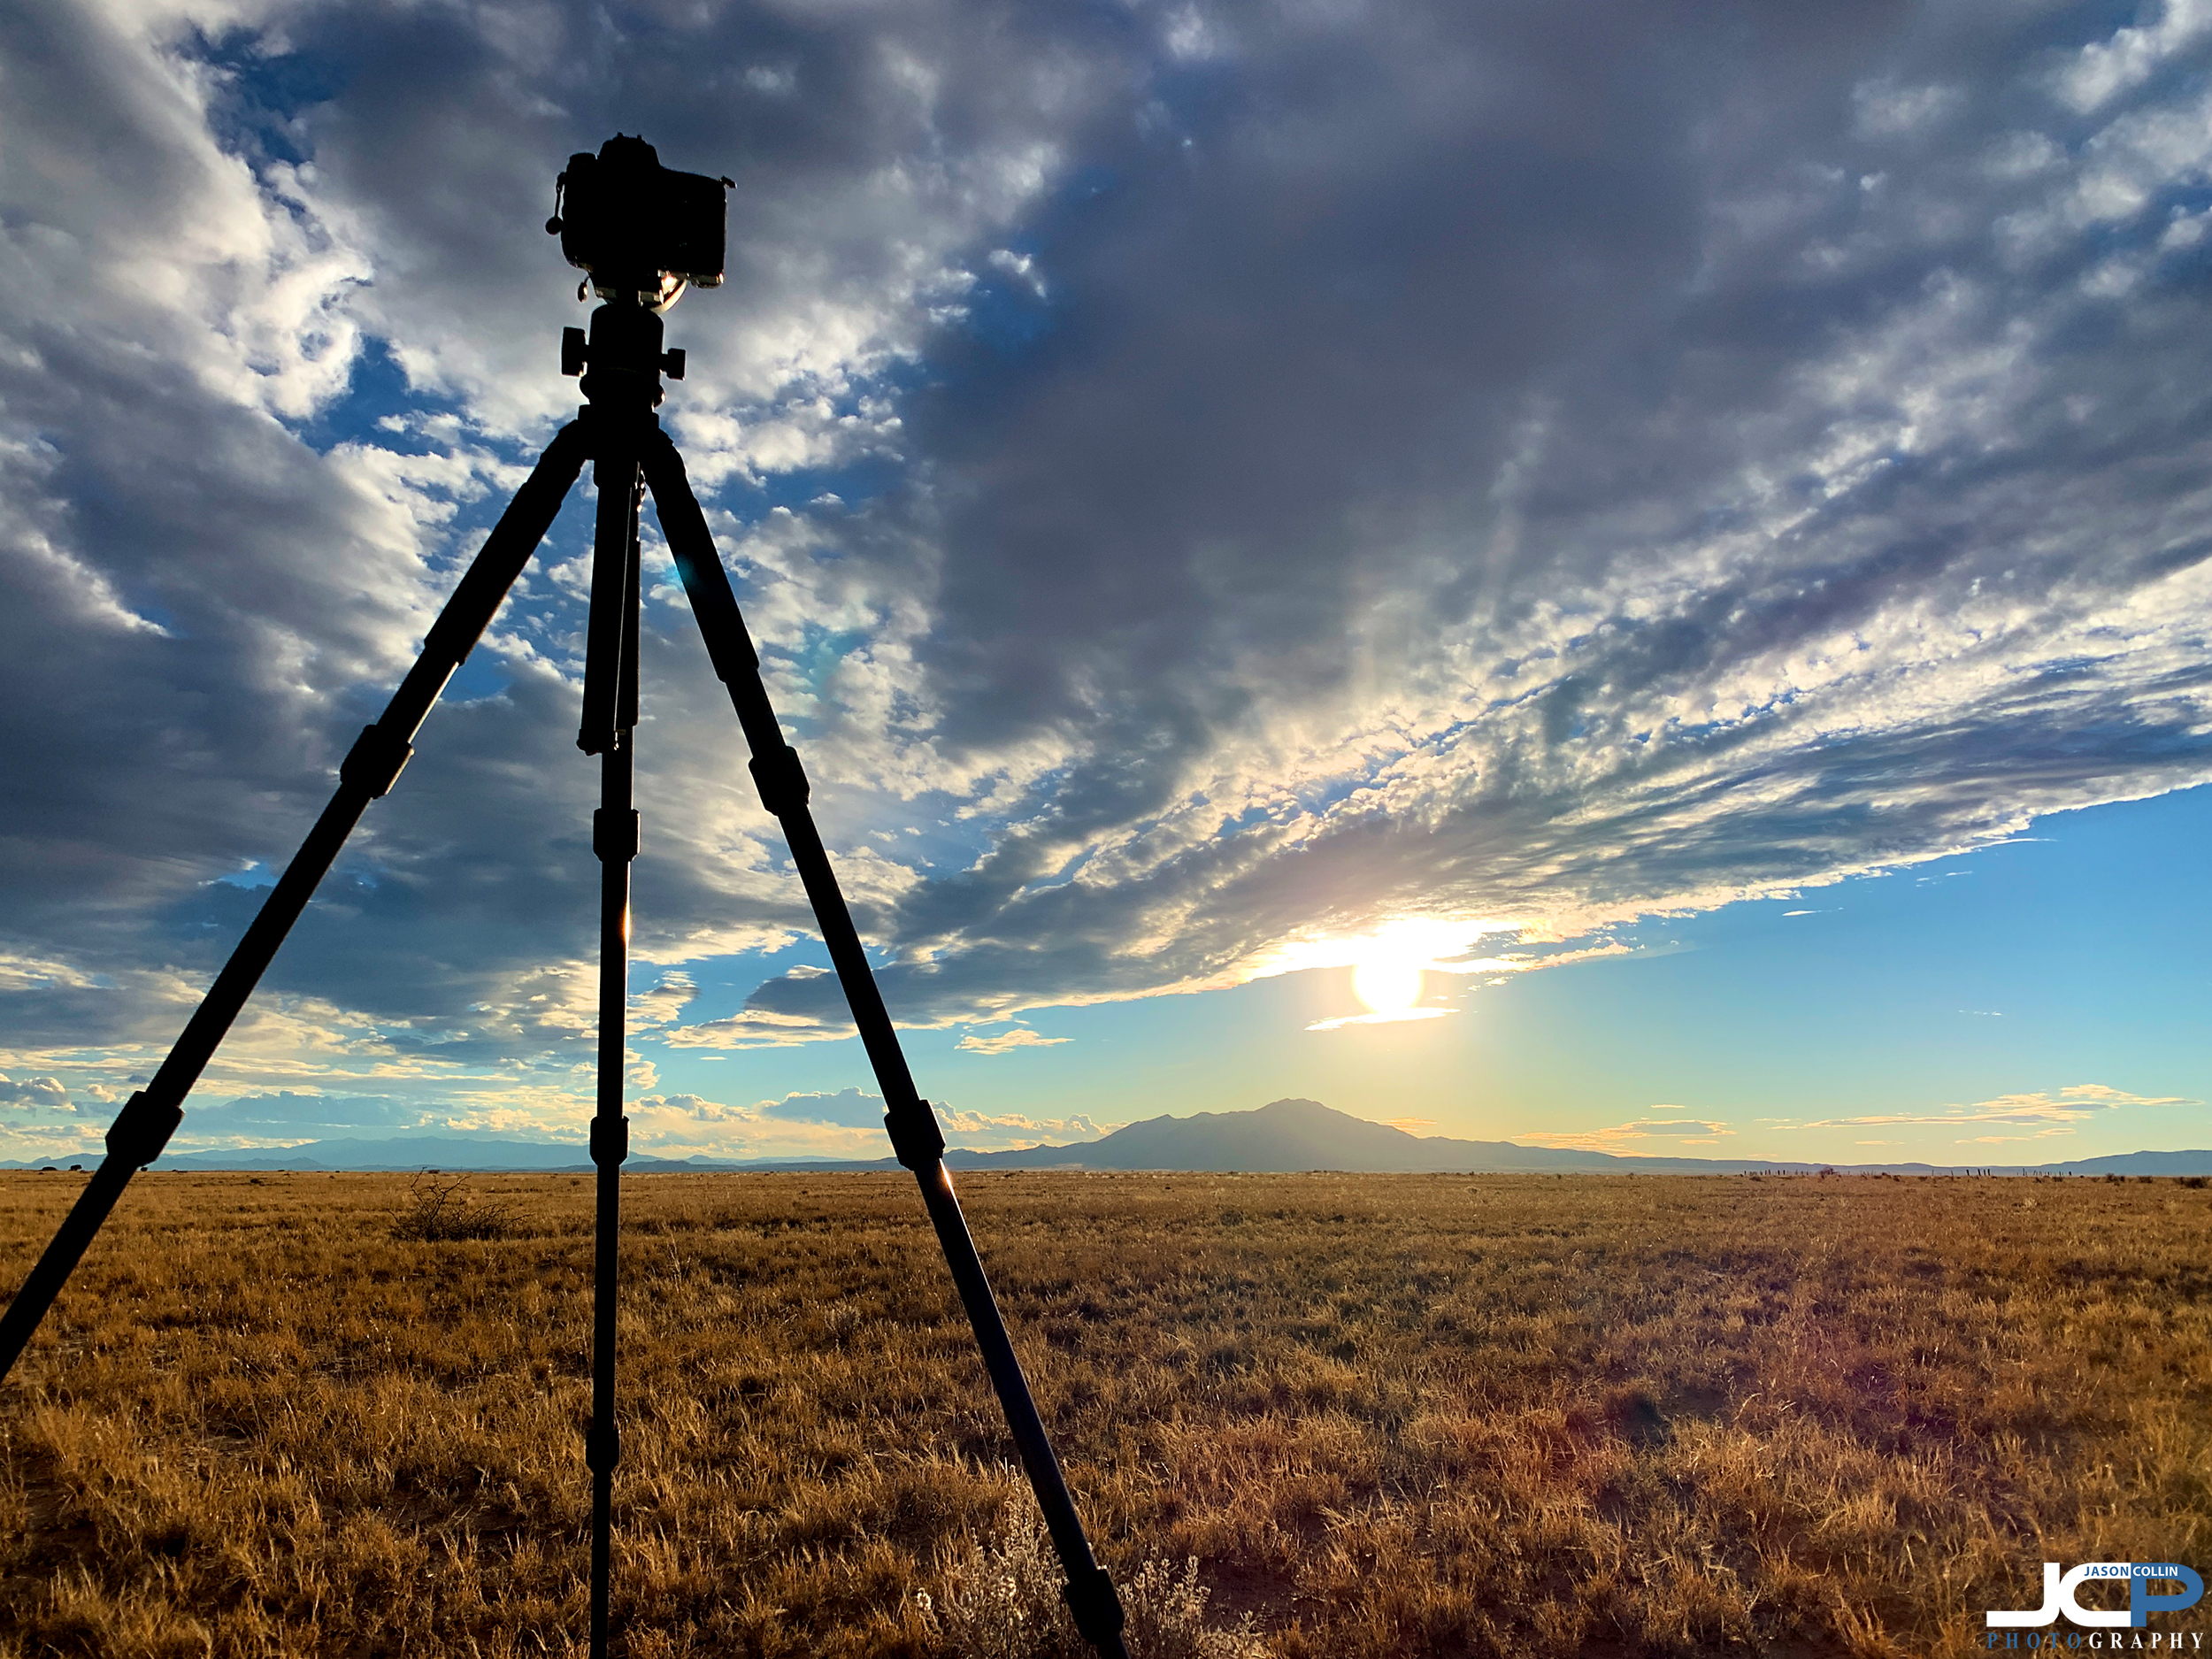 My HDR sunset setup - Nikon D750 with Tamron 15-30mm f/2.8 SP lens on an Indoor carbon fiber tripod - this photo made with an iPhone XS